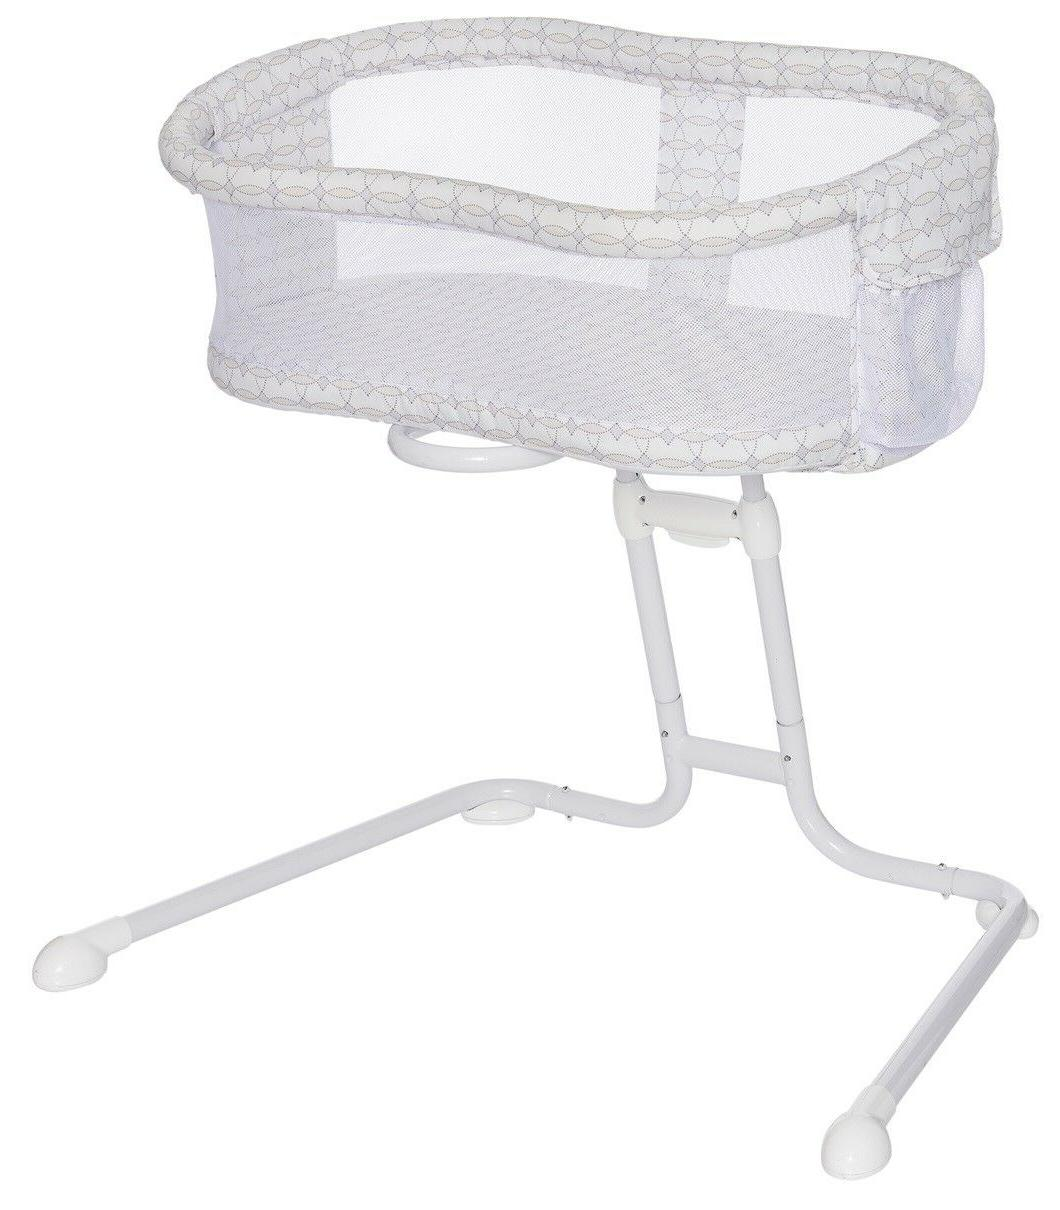 bassinest glide sleeper bassinet infant baby crib